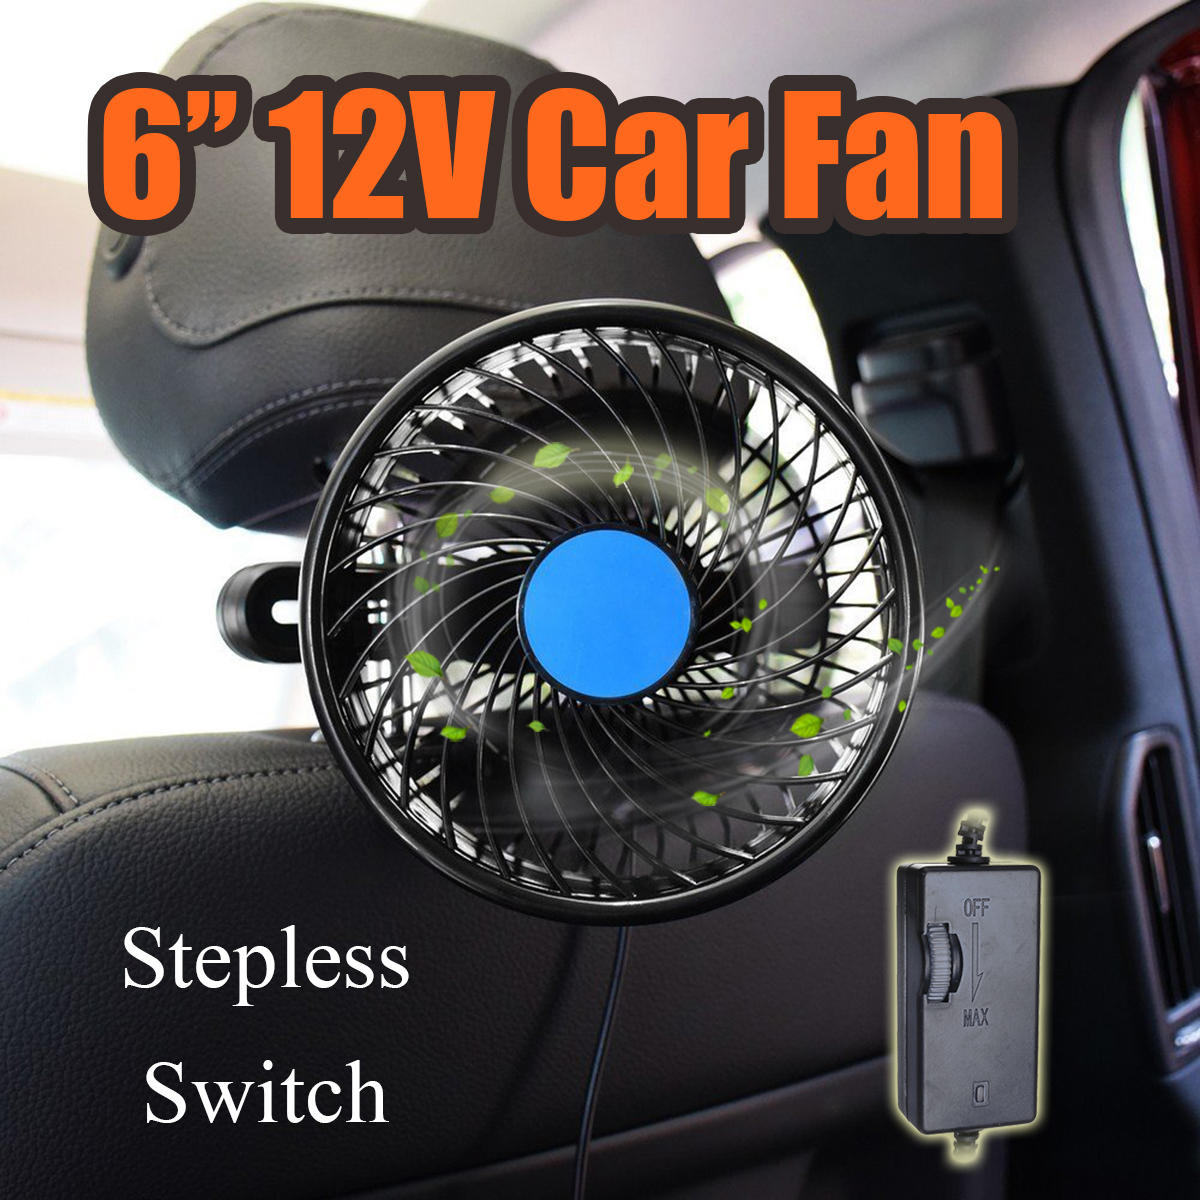 6 Inch 12V Vehicle Auto Car Headrest Rear Seat Cooling Fan 360 Degree Rotatable Stepless